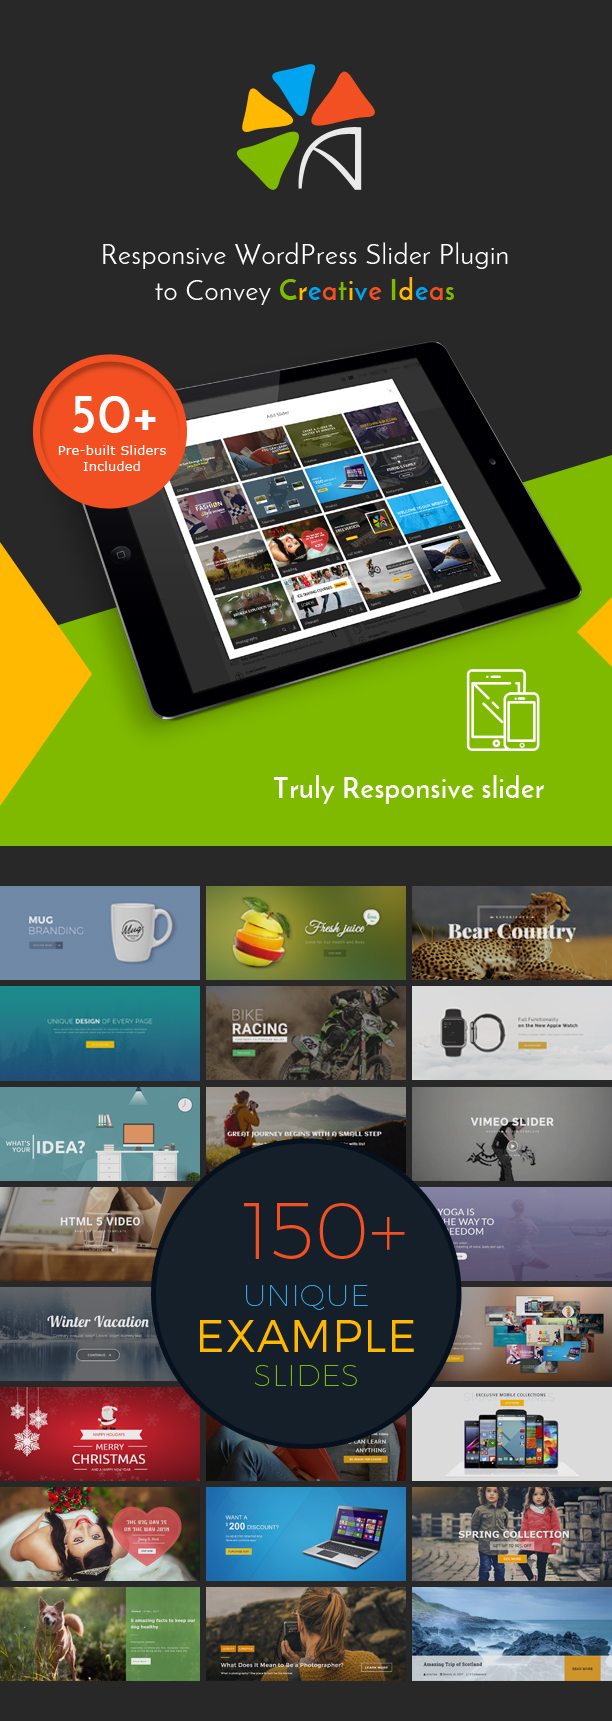 Best responsive Wordpress slider plugin - Avartan slider